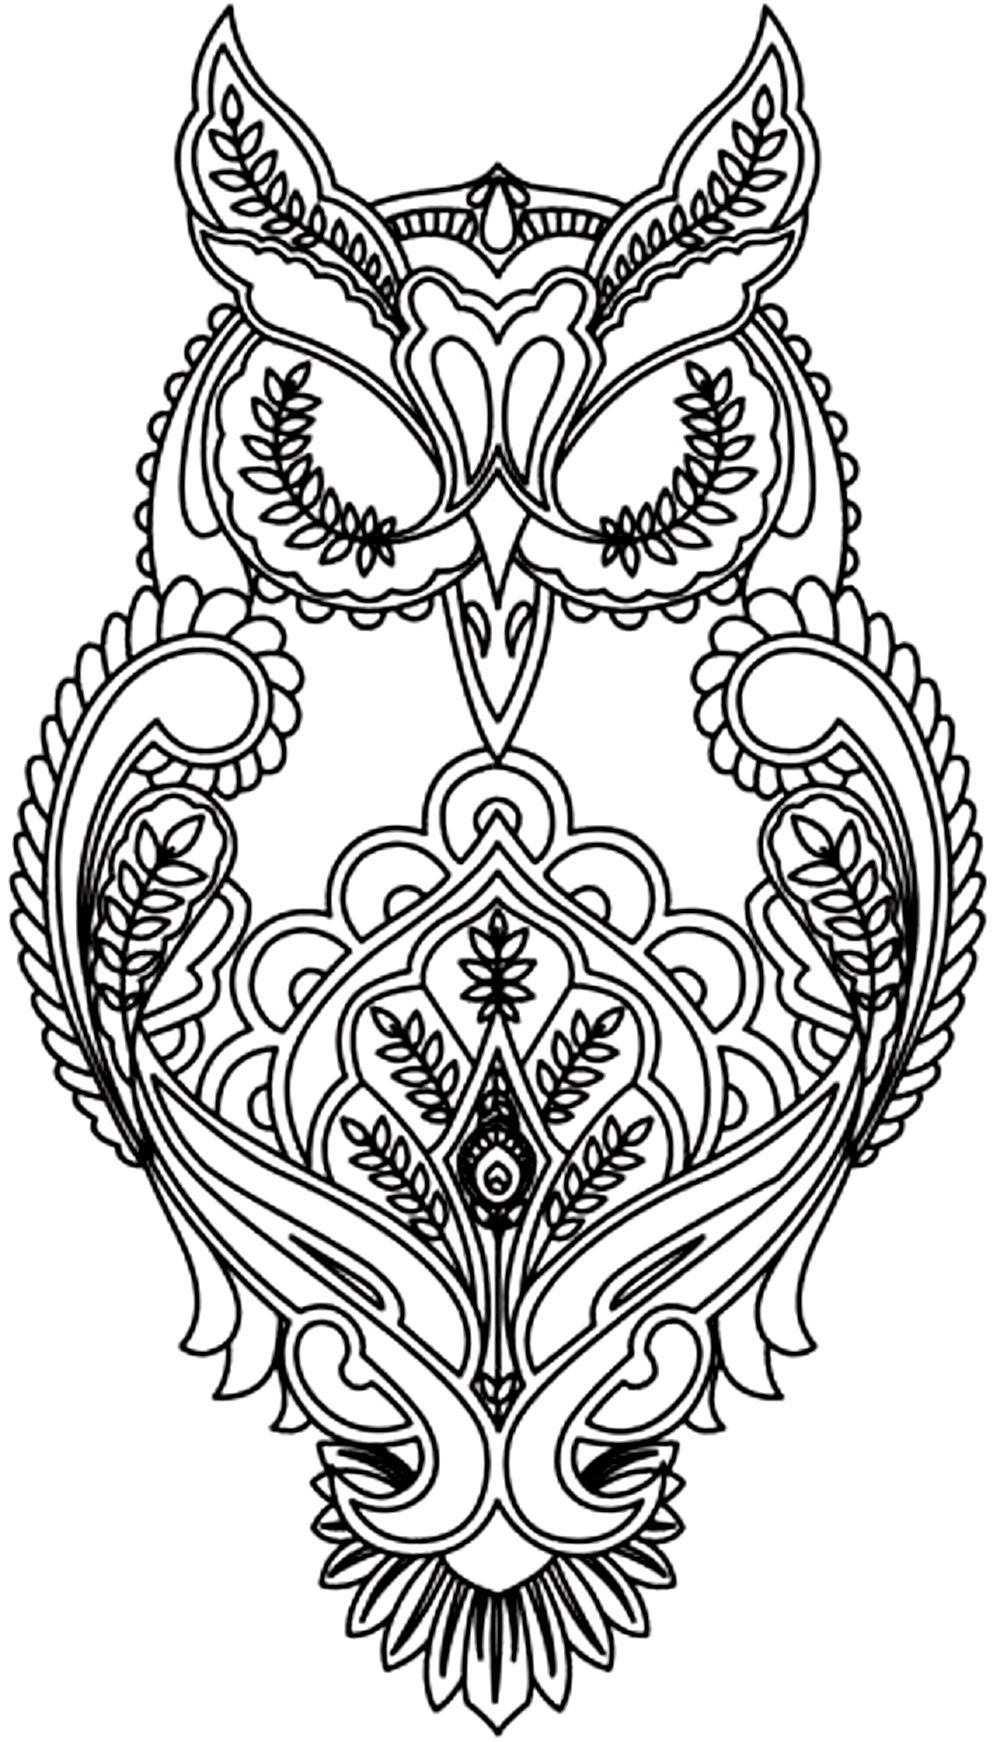 Long e coloring pages - 100 Free Coloring Pages For Adults And Children